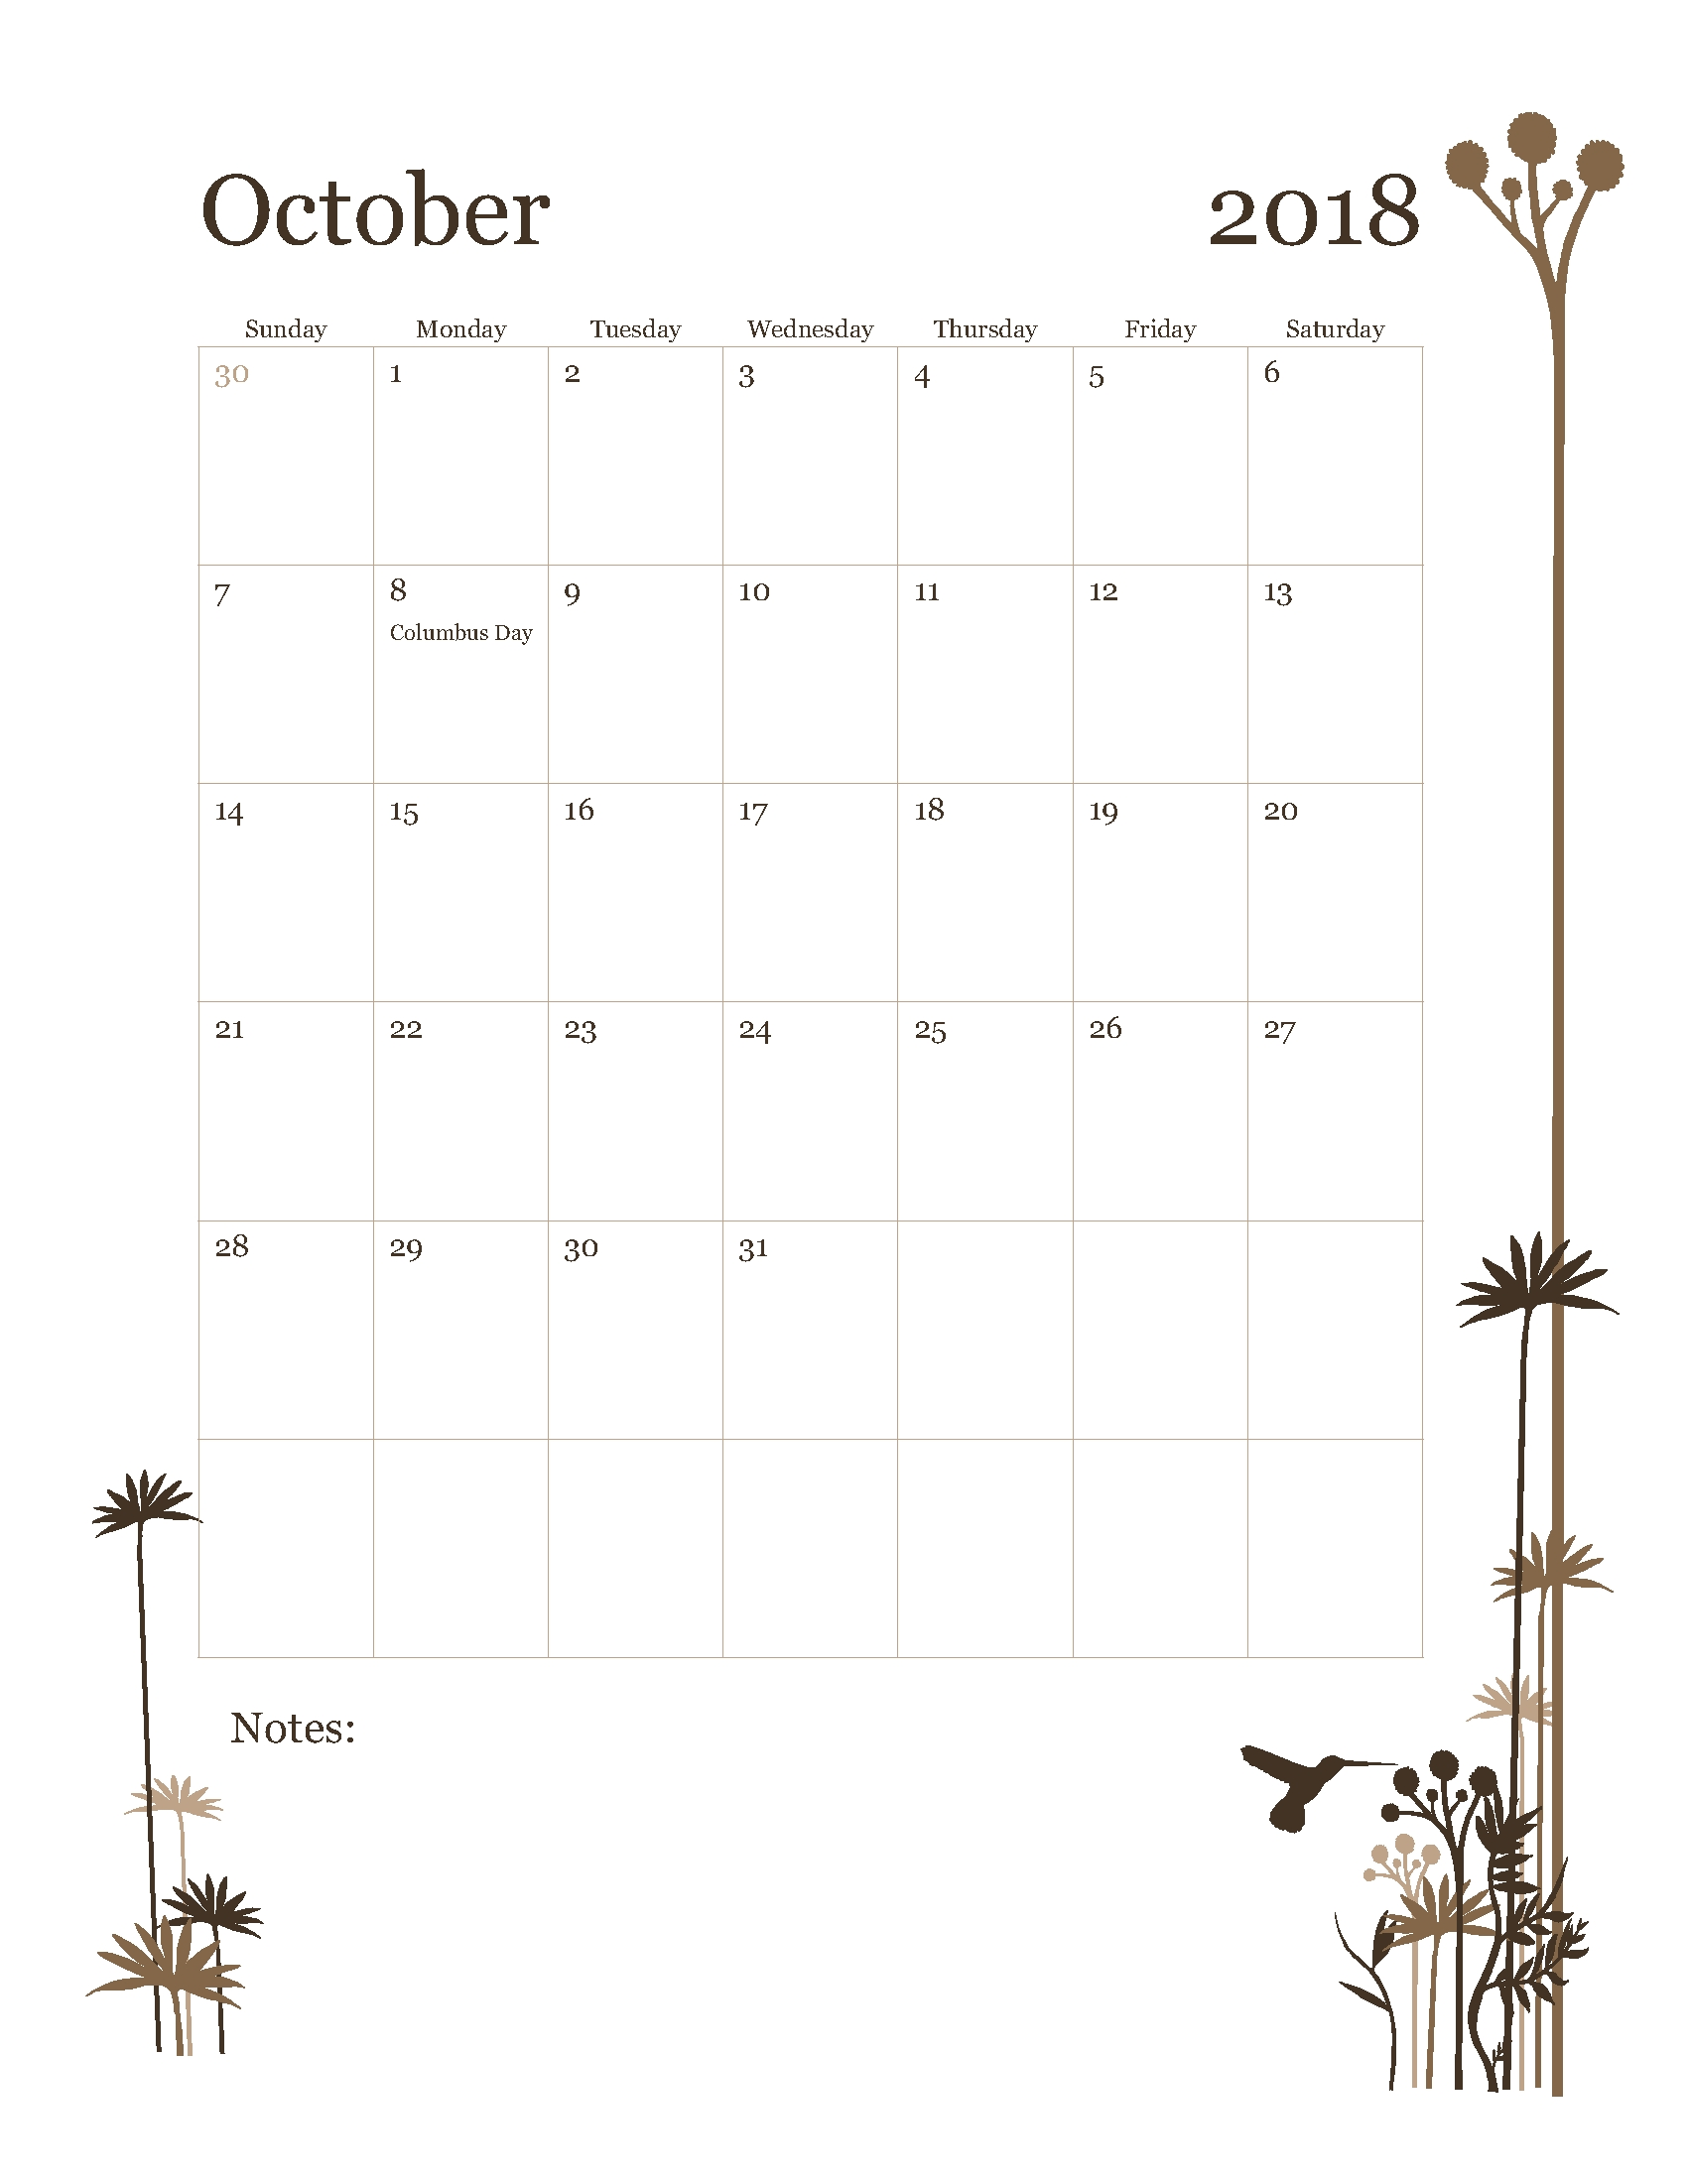 october 2018 calendar template word free printable calendar Free October 2018 Calendar Word Document erdferdf